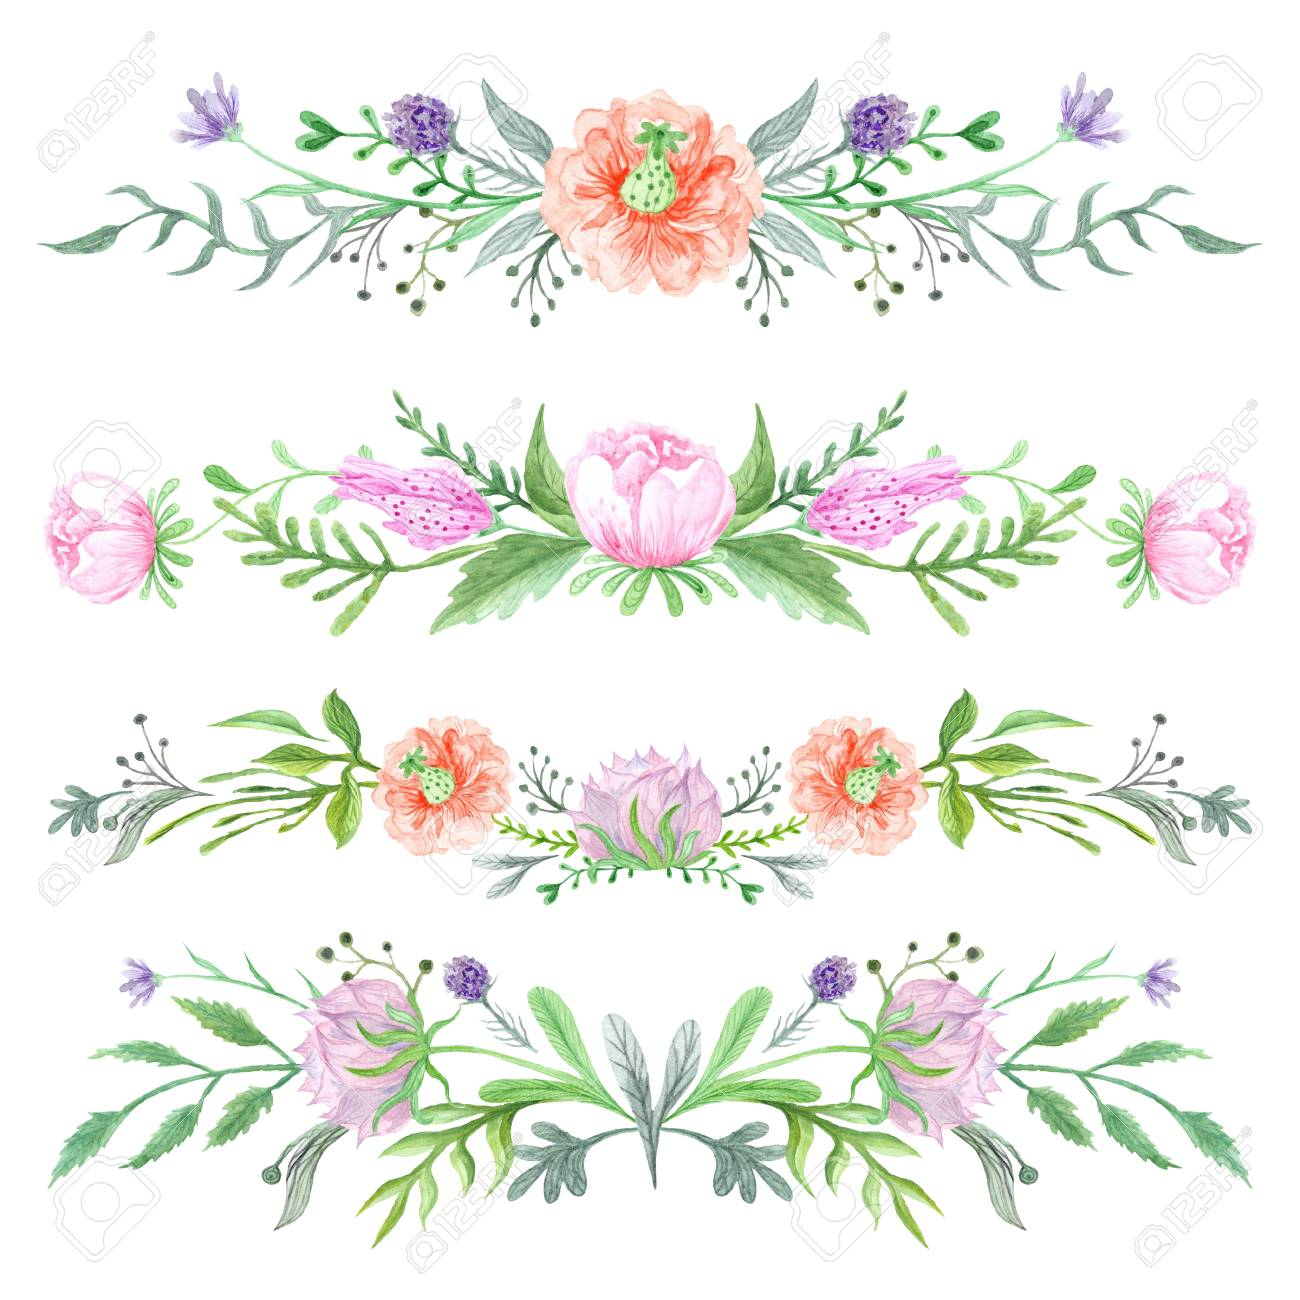 Romantic Elegant Borders With Wild Herbs And Meadow Flowers For Card,  Invitation, Wedding Design